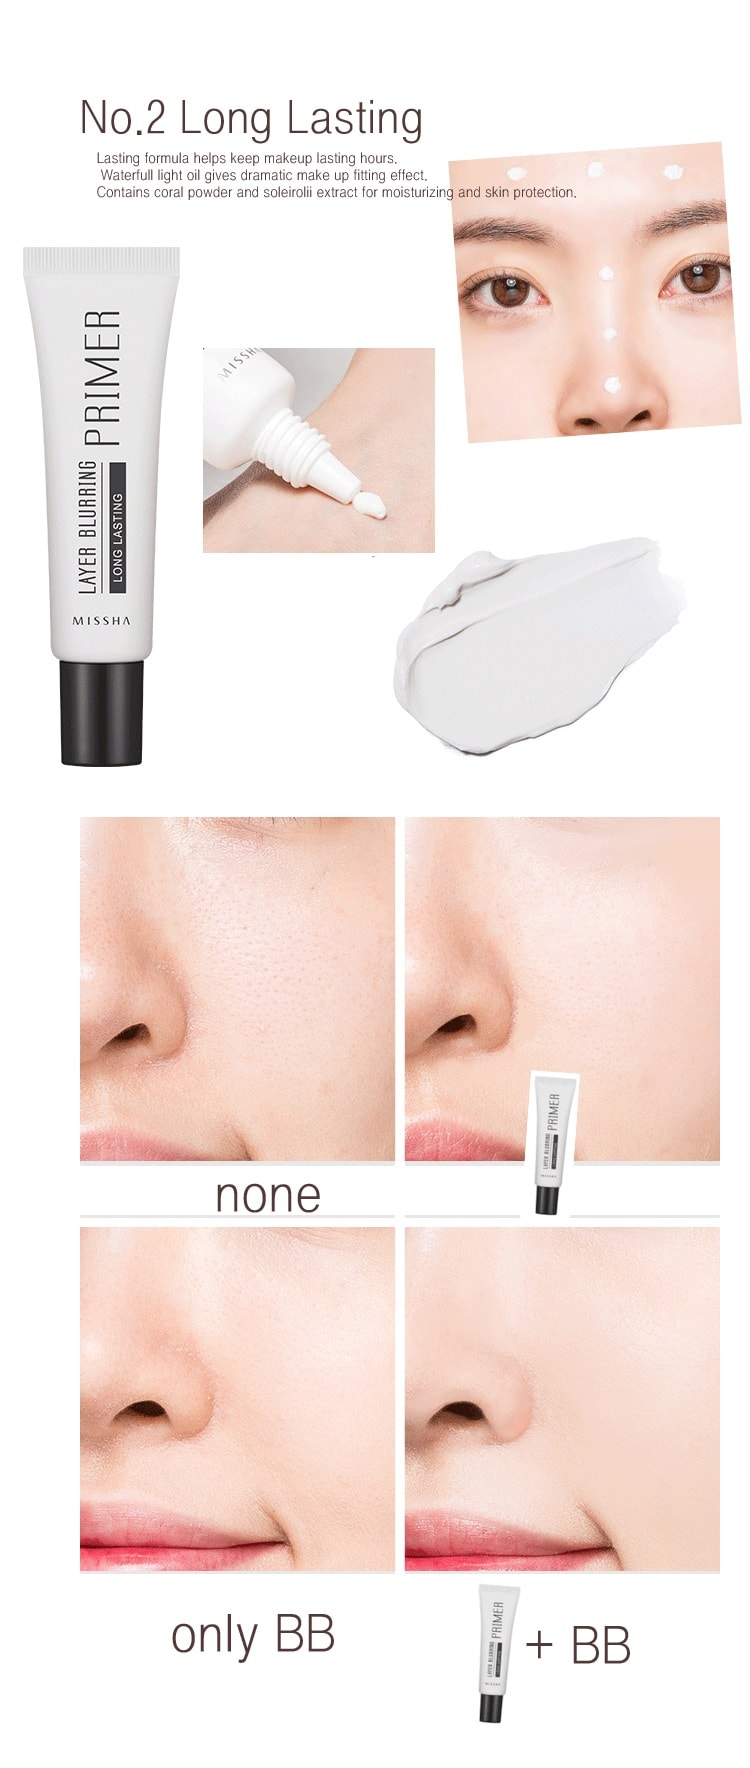 MISSHA Layer Blurring Primer [Long Lasting]